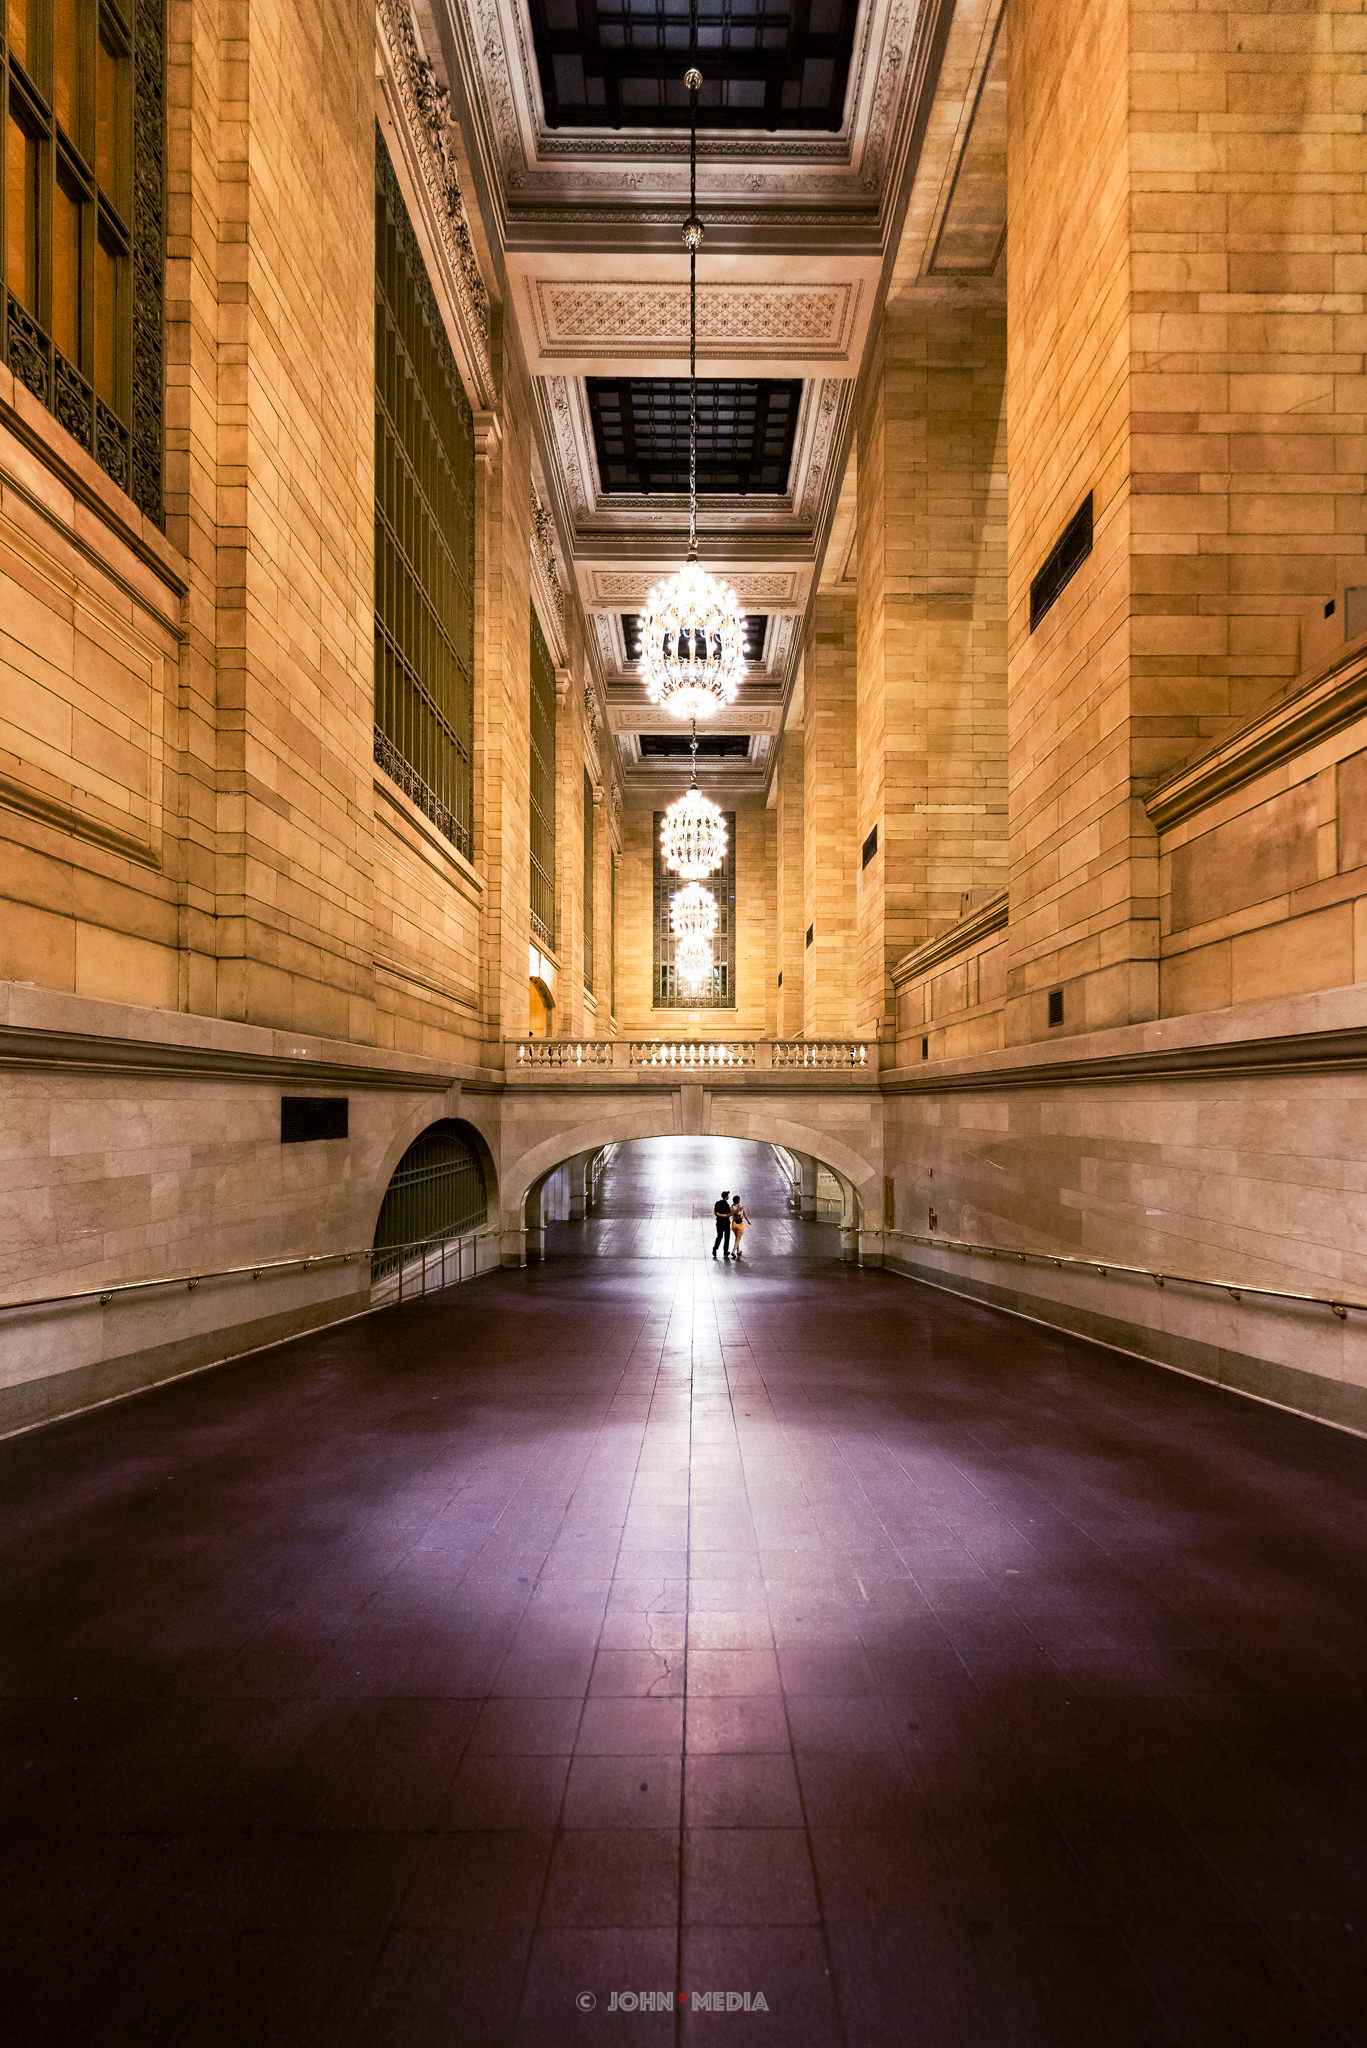 Grand Central Station lovers